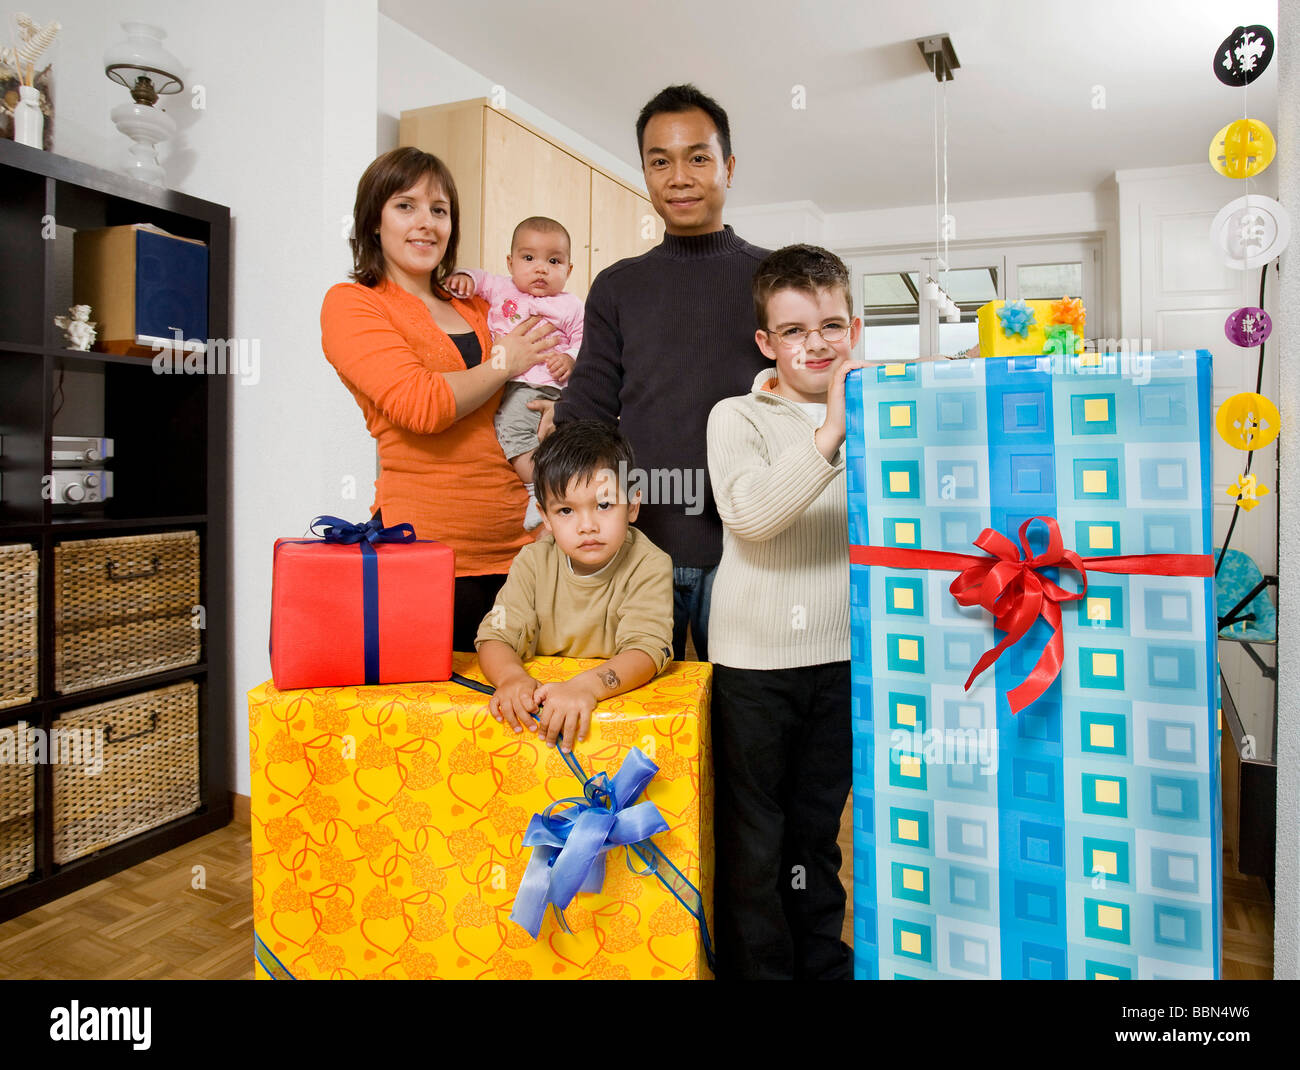 Family with gifts, Basel, Switzerland, Europe - Stock Image